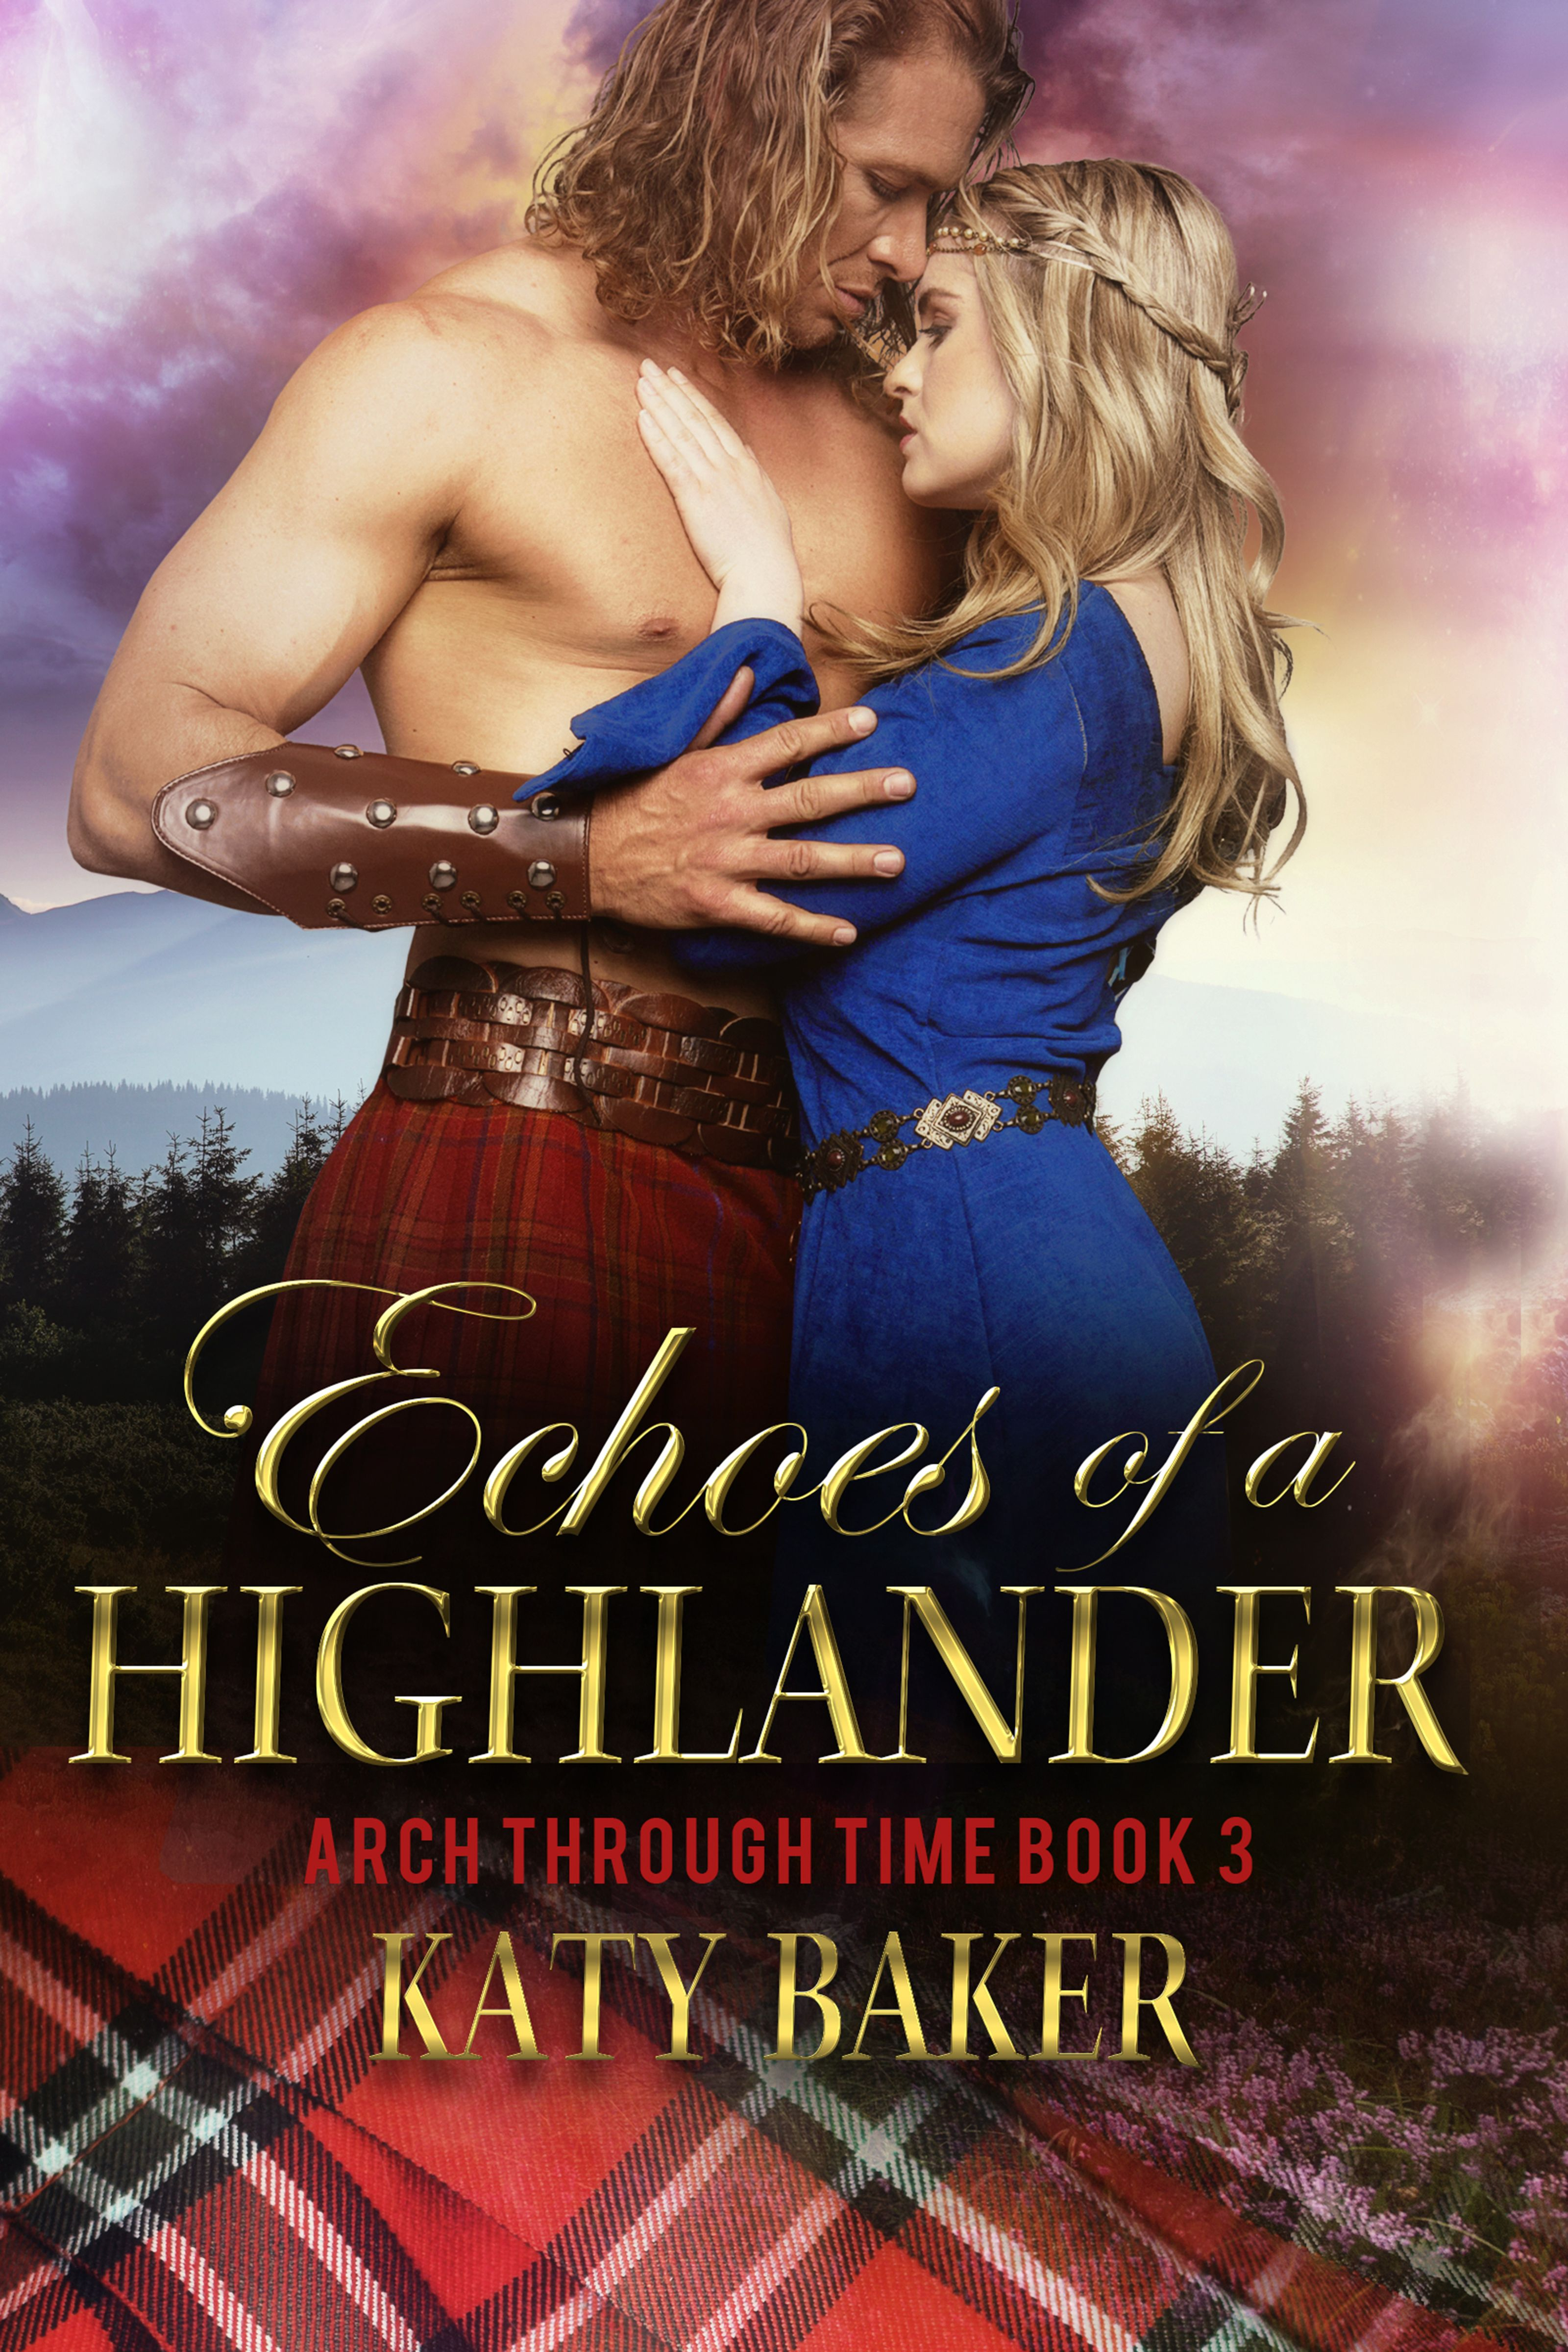 Echoes of a highlander by katy baker gripping time travel romance echoes of a highlander by katy baker gripping time travel romance 099 http fandeluxe Choice Image